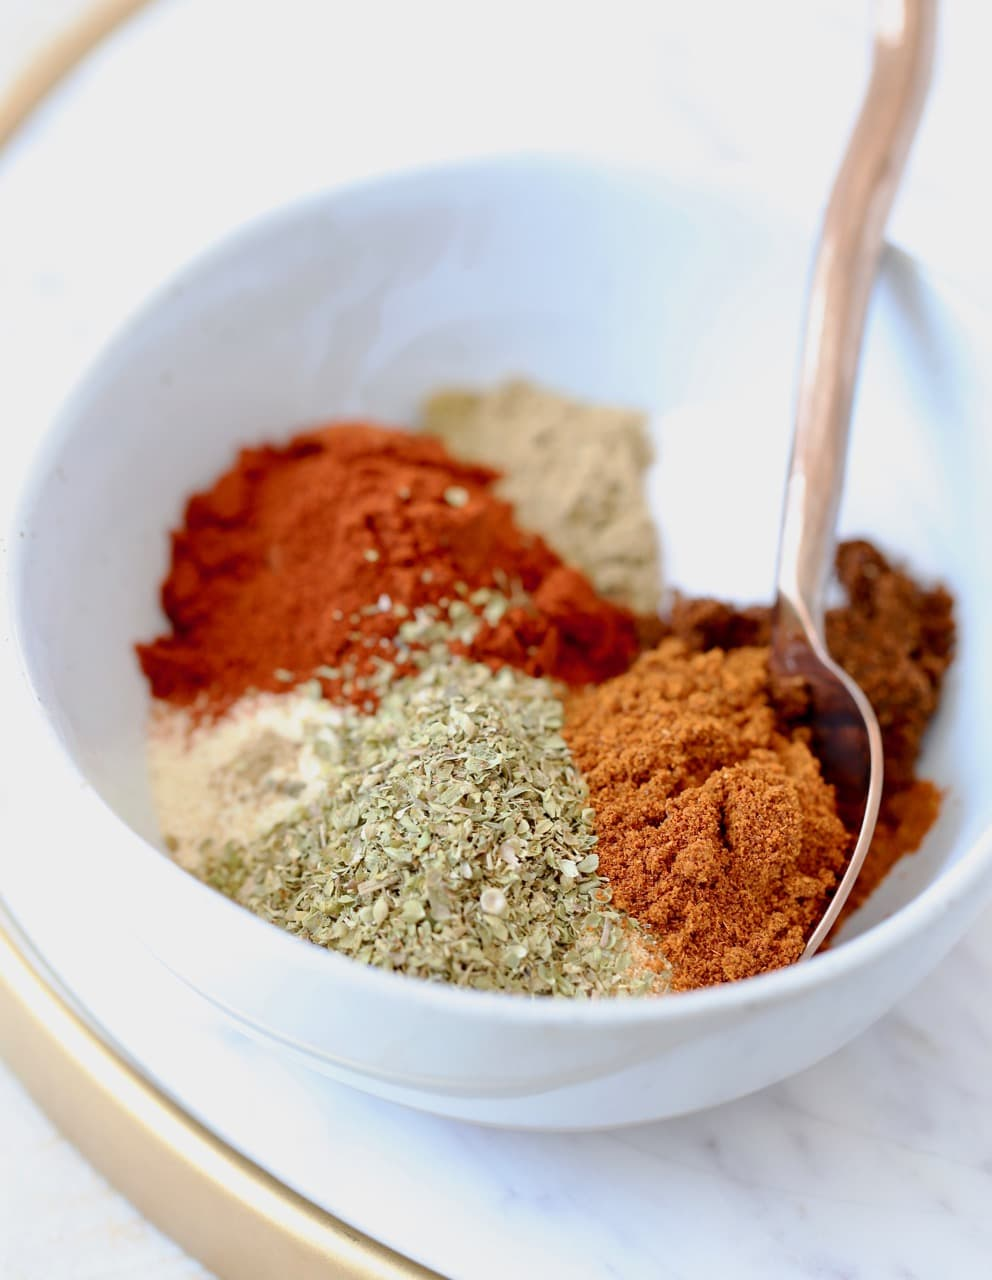 Homemade taco seasoning with 8 different spices in bowl with spoon